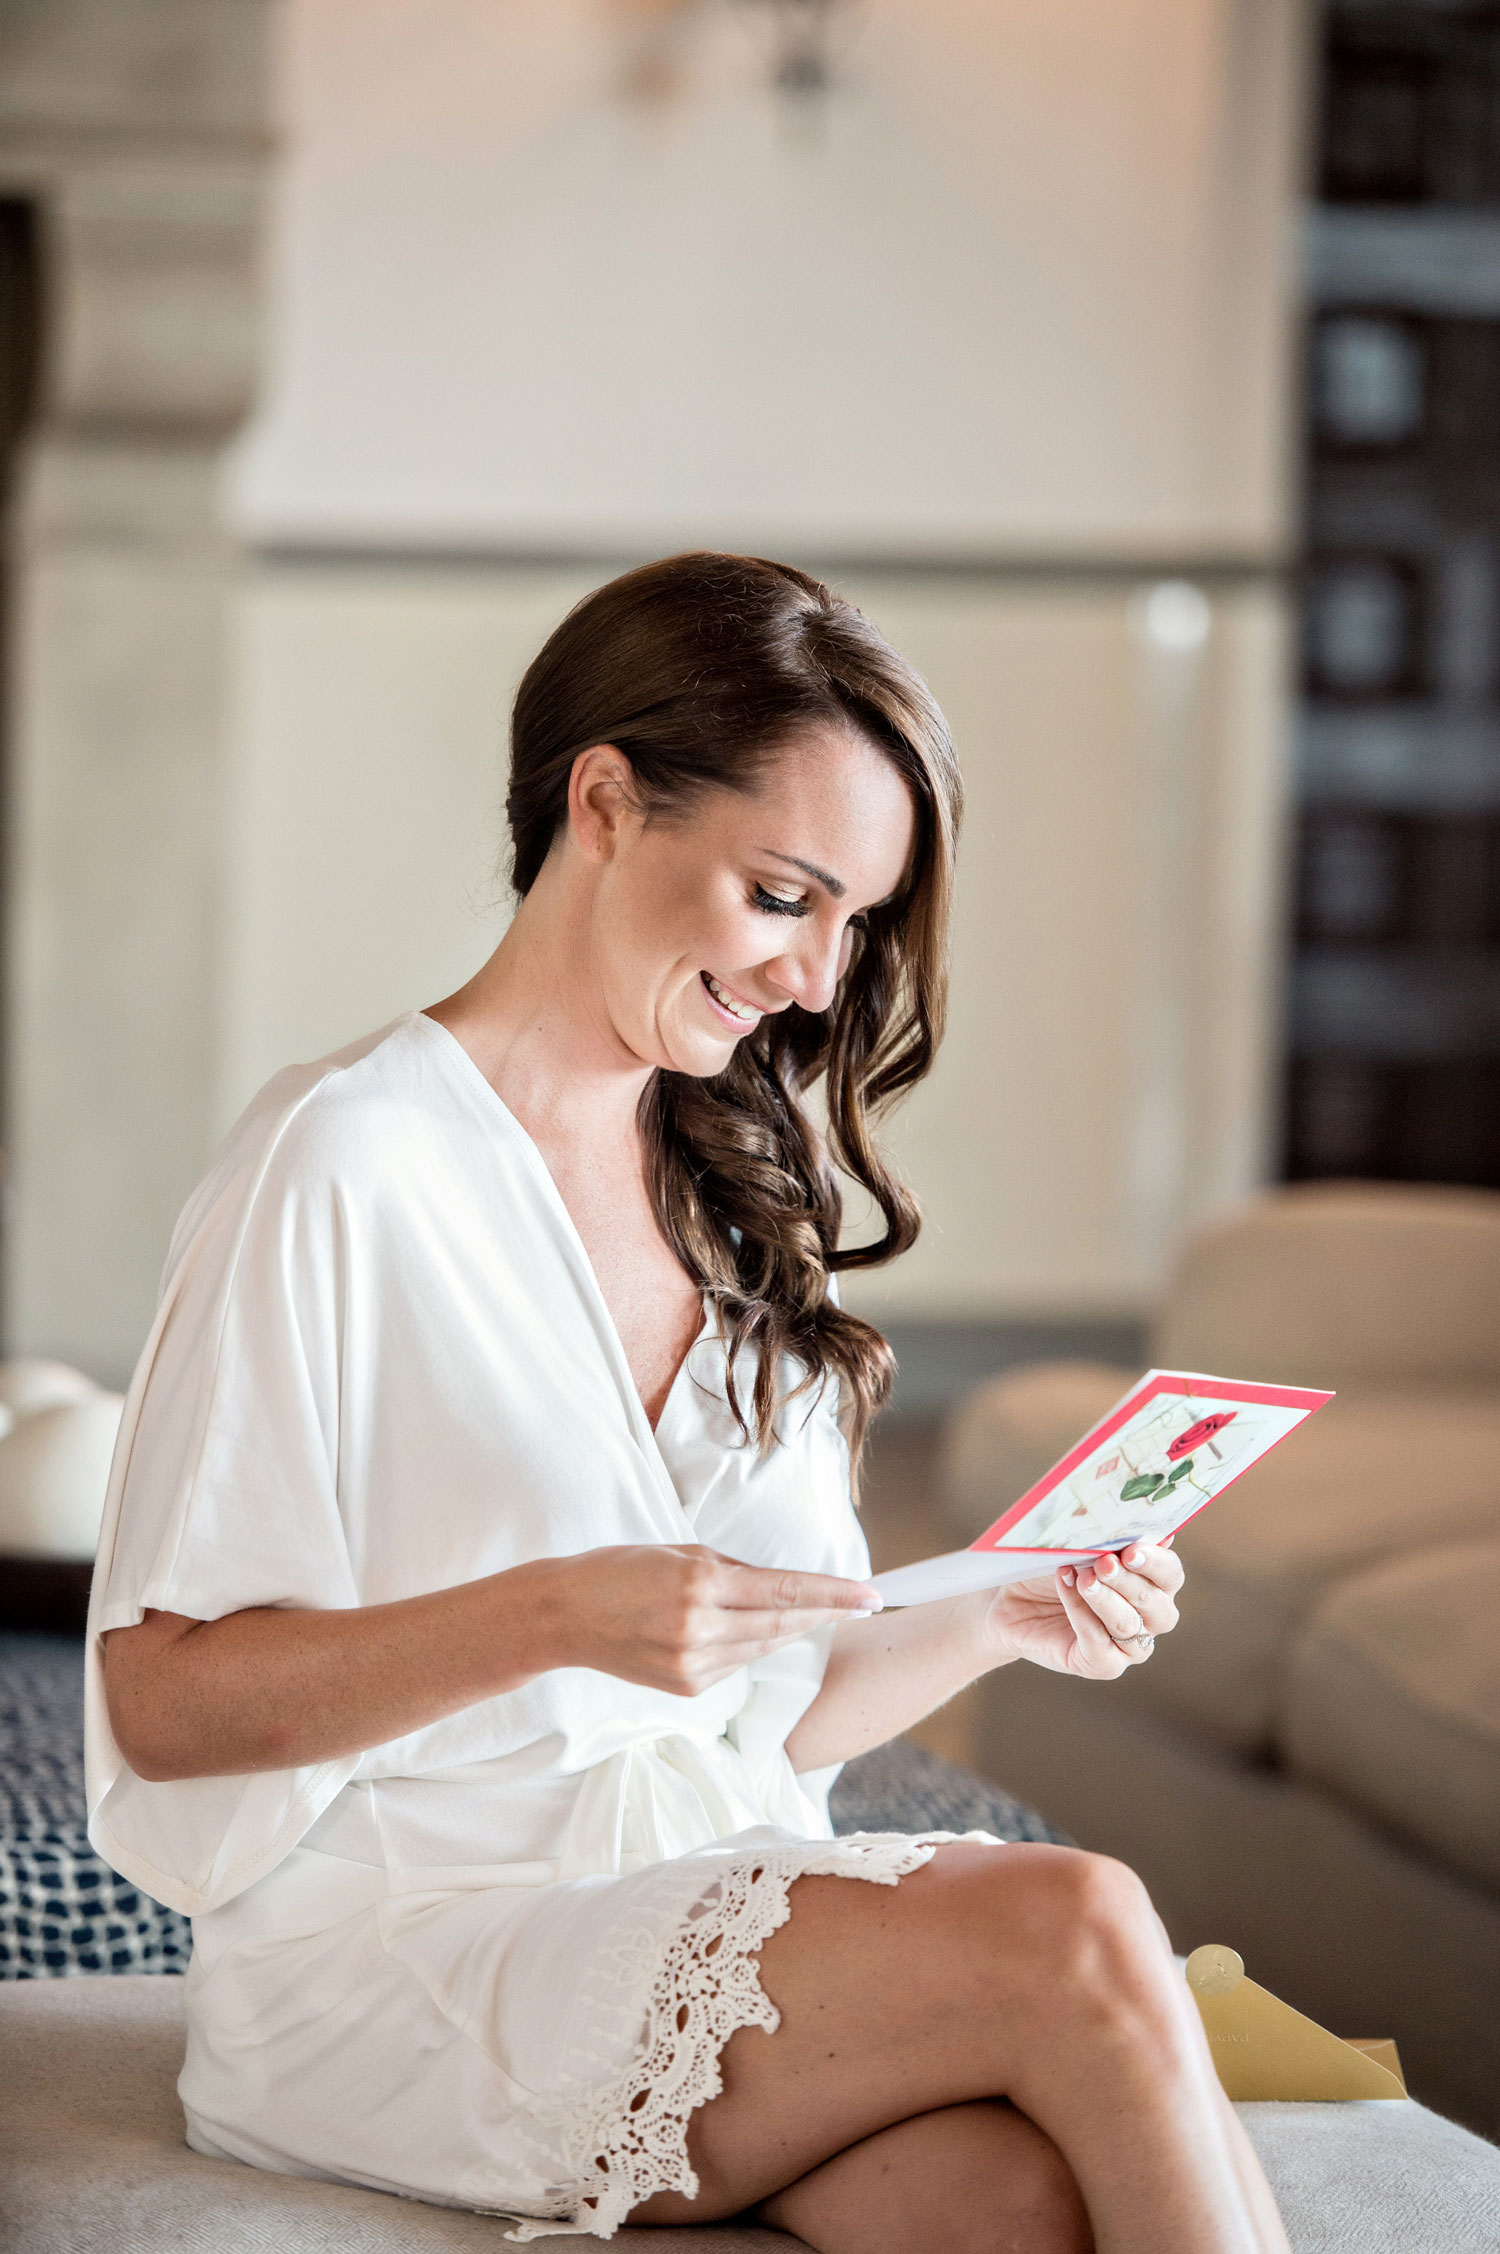 Bride reading card from groom or family member in white robe bride